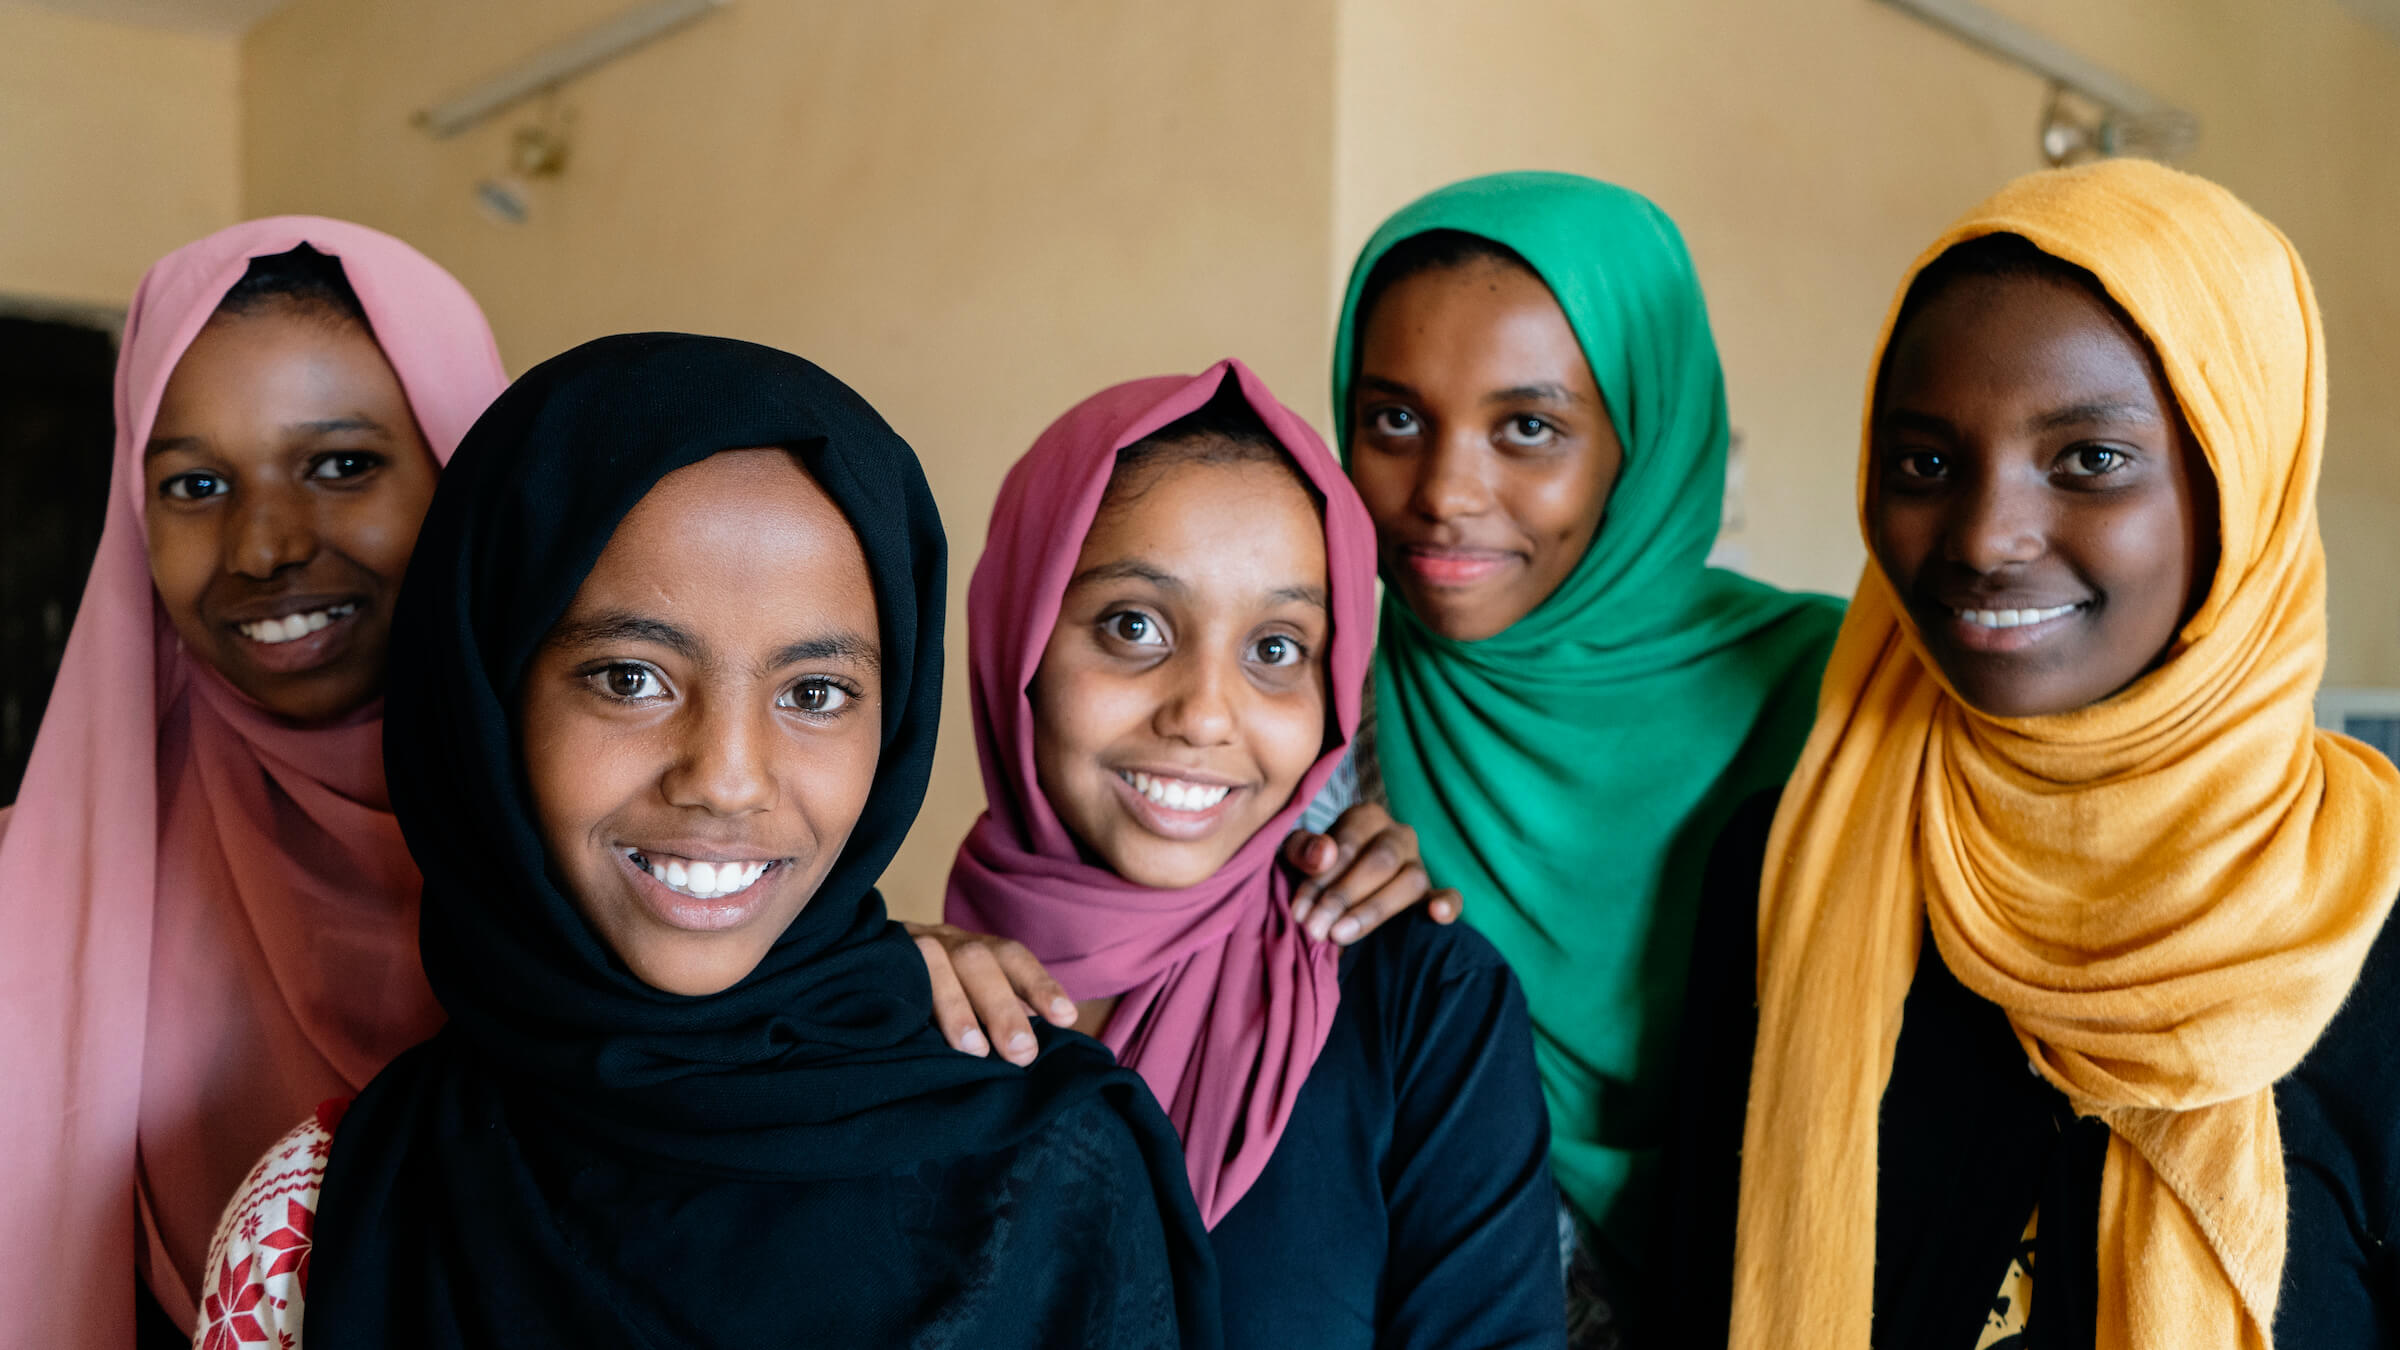 SoWC Young people in Sudan